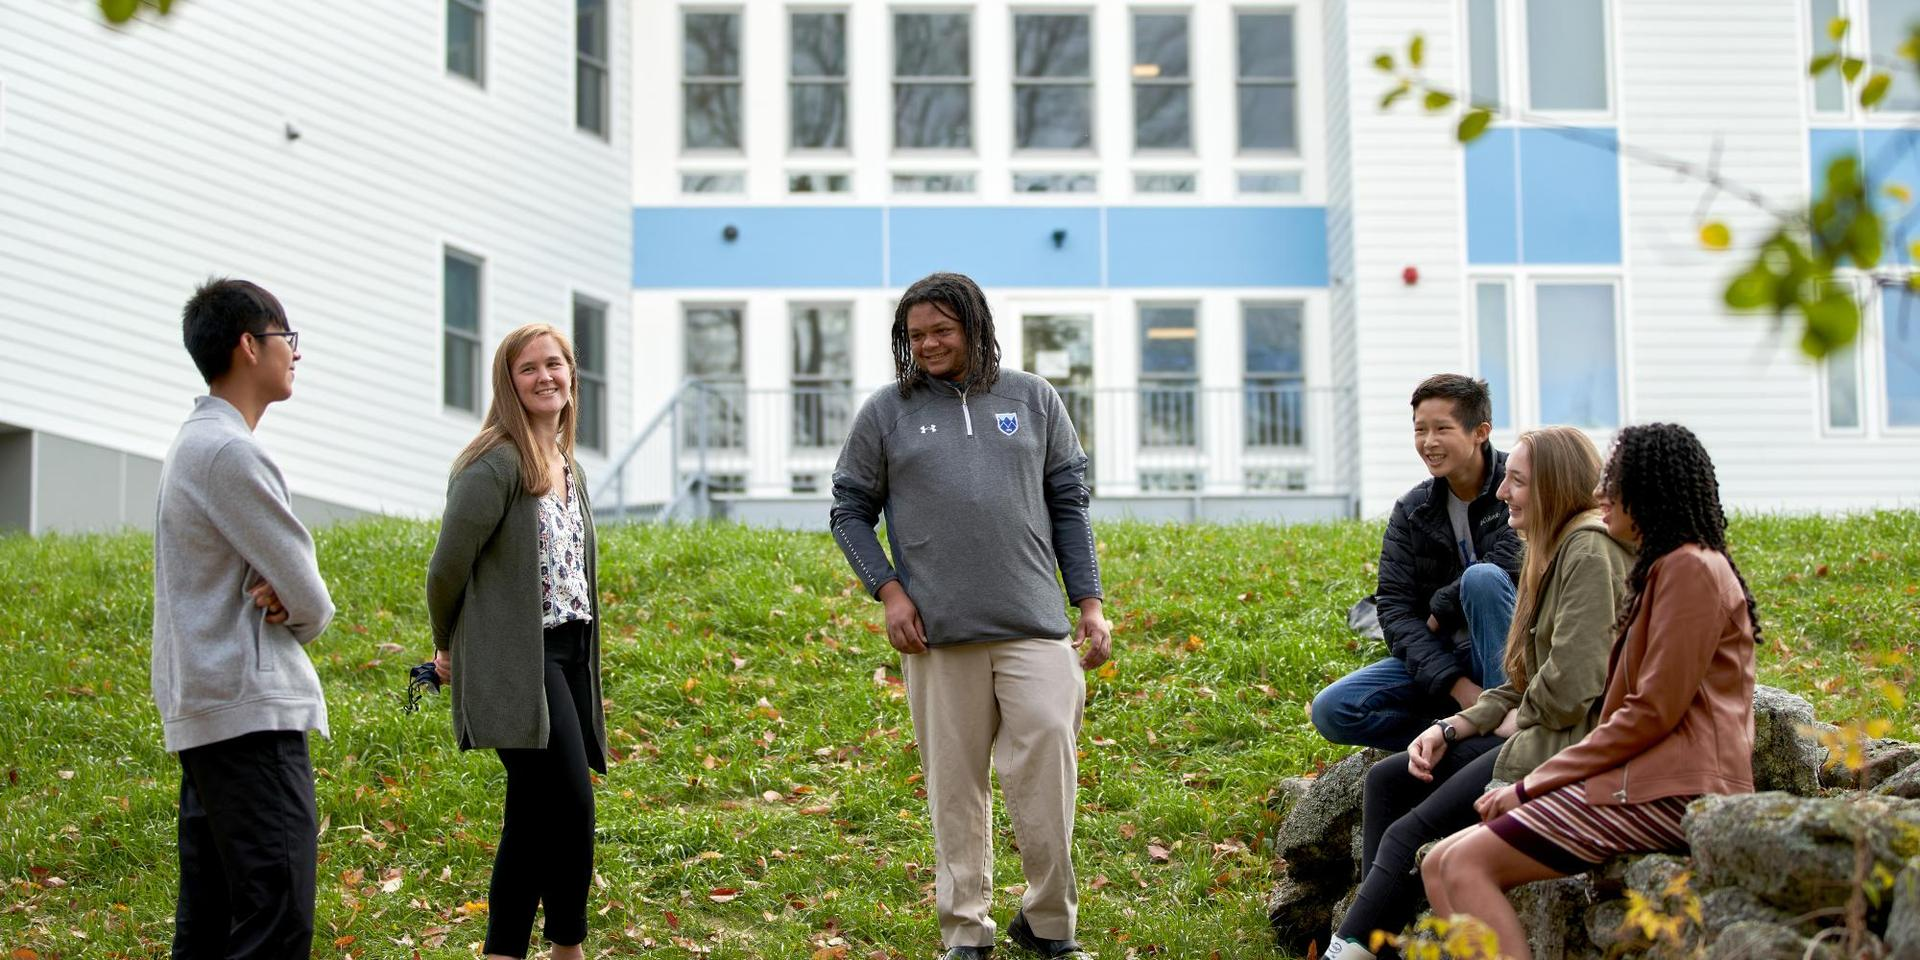 A group of students and faculty in front of the New Dorm.